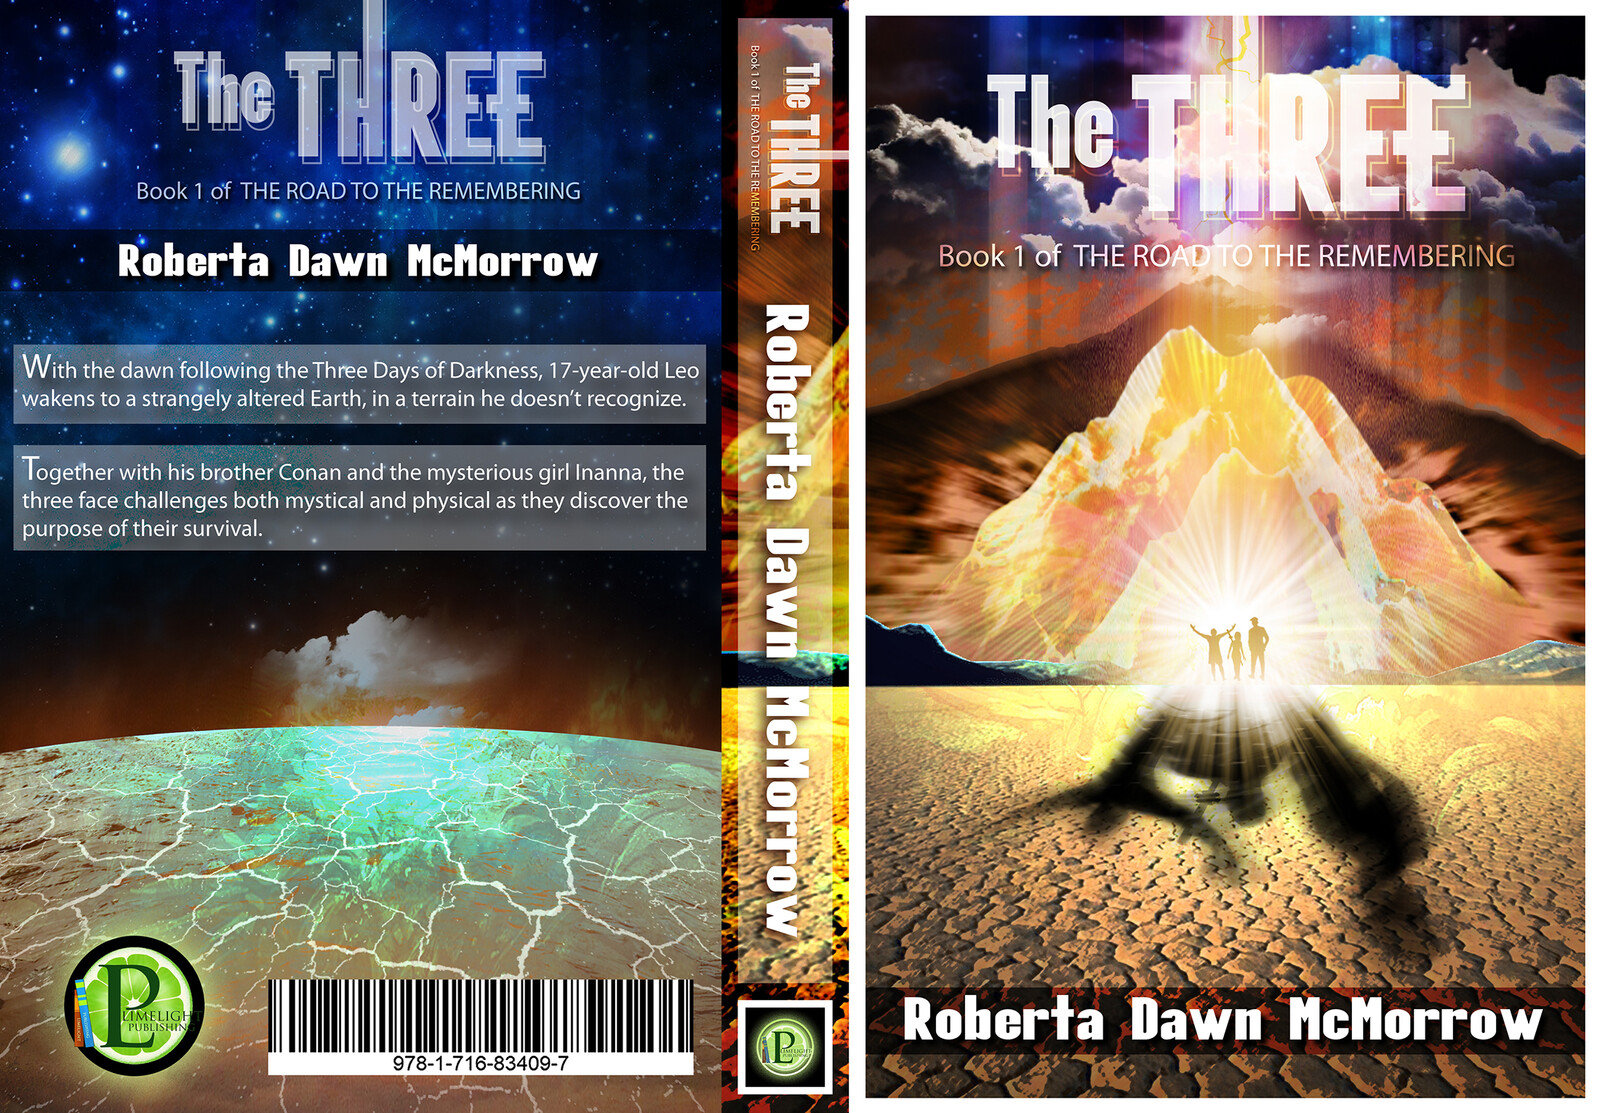 Book cover design I created for 'The THREE', written by Roberta Dawn McMorrow and published by Limelight Publishing.